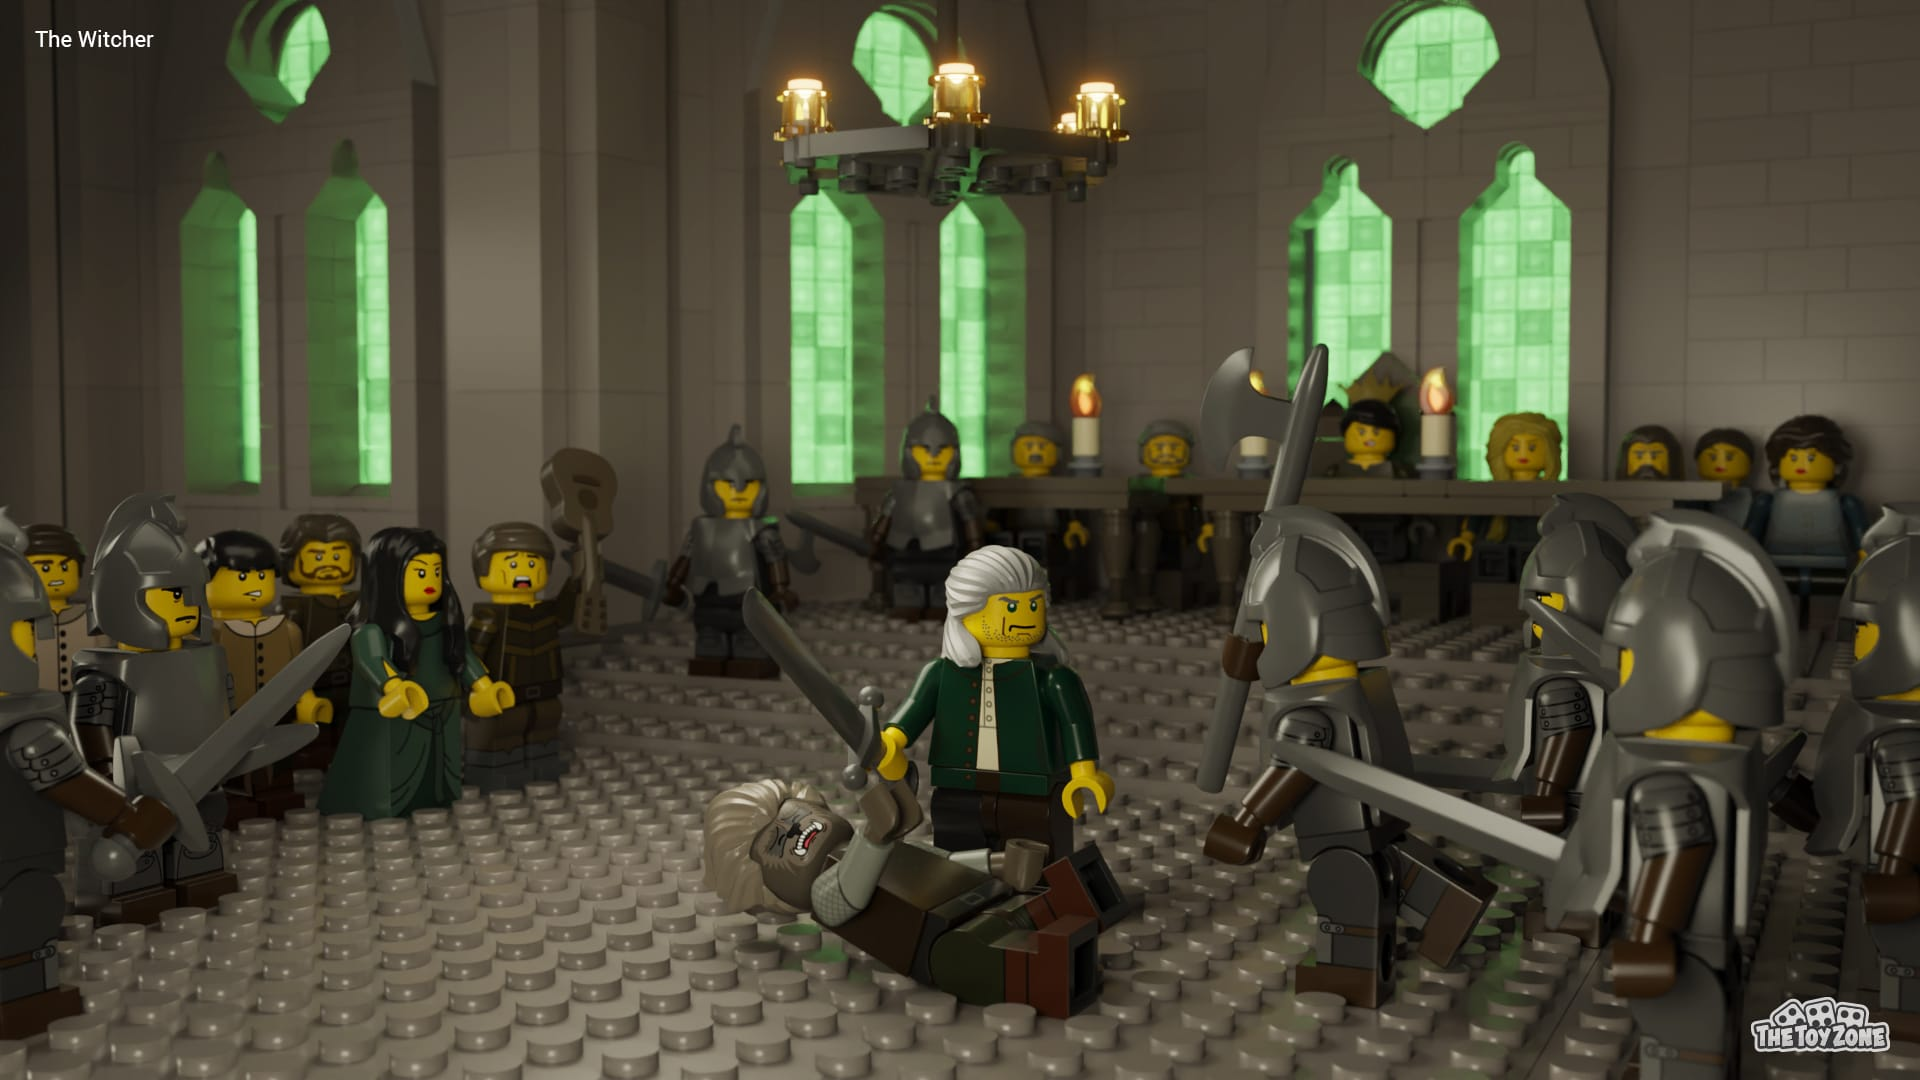 The Crown, Bridgerton, and other Netflix series get recreated in LEGO 20